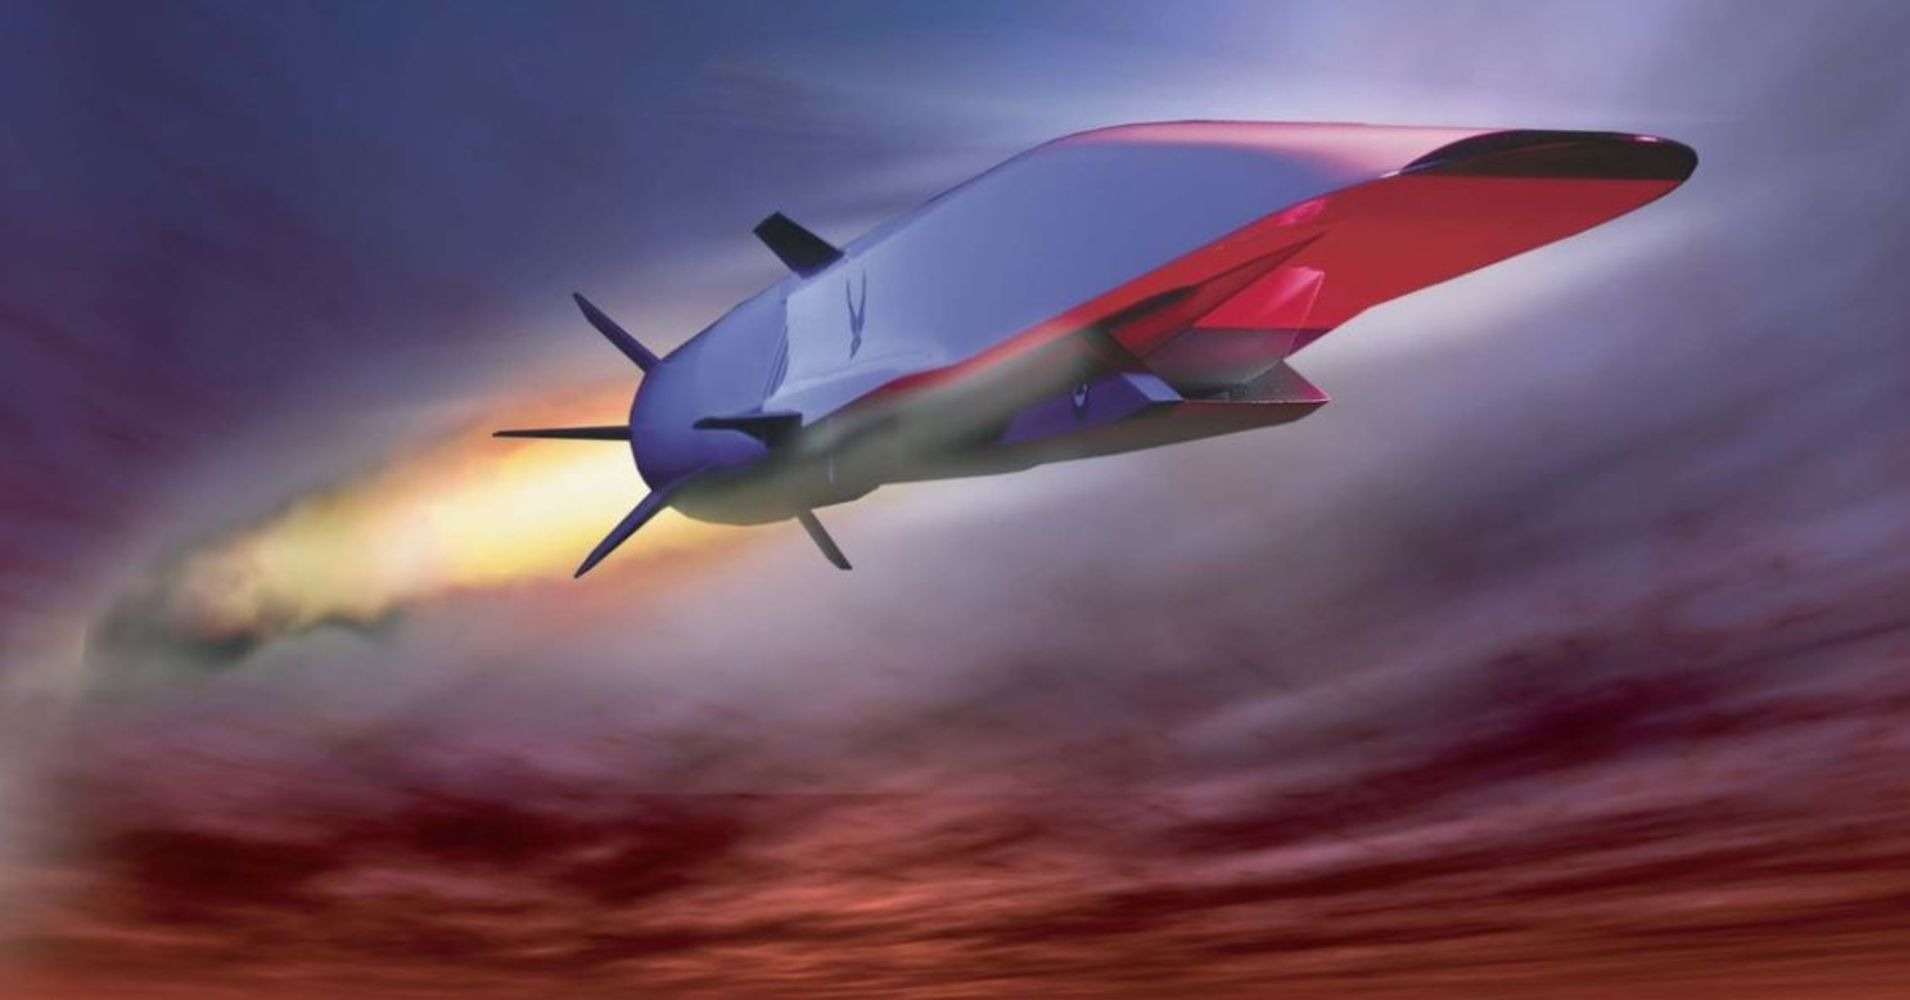 DARPA Builds Advanced Interceptor Weapon to Destroy Hypersonic Missile Attacks - Warrior Maven